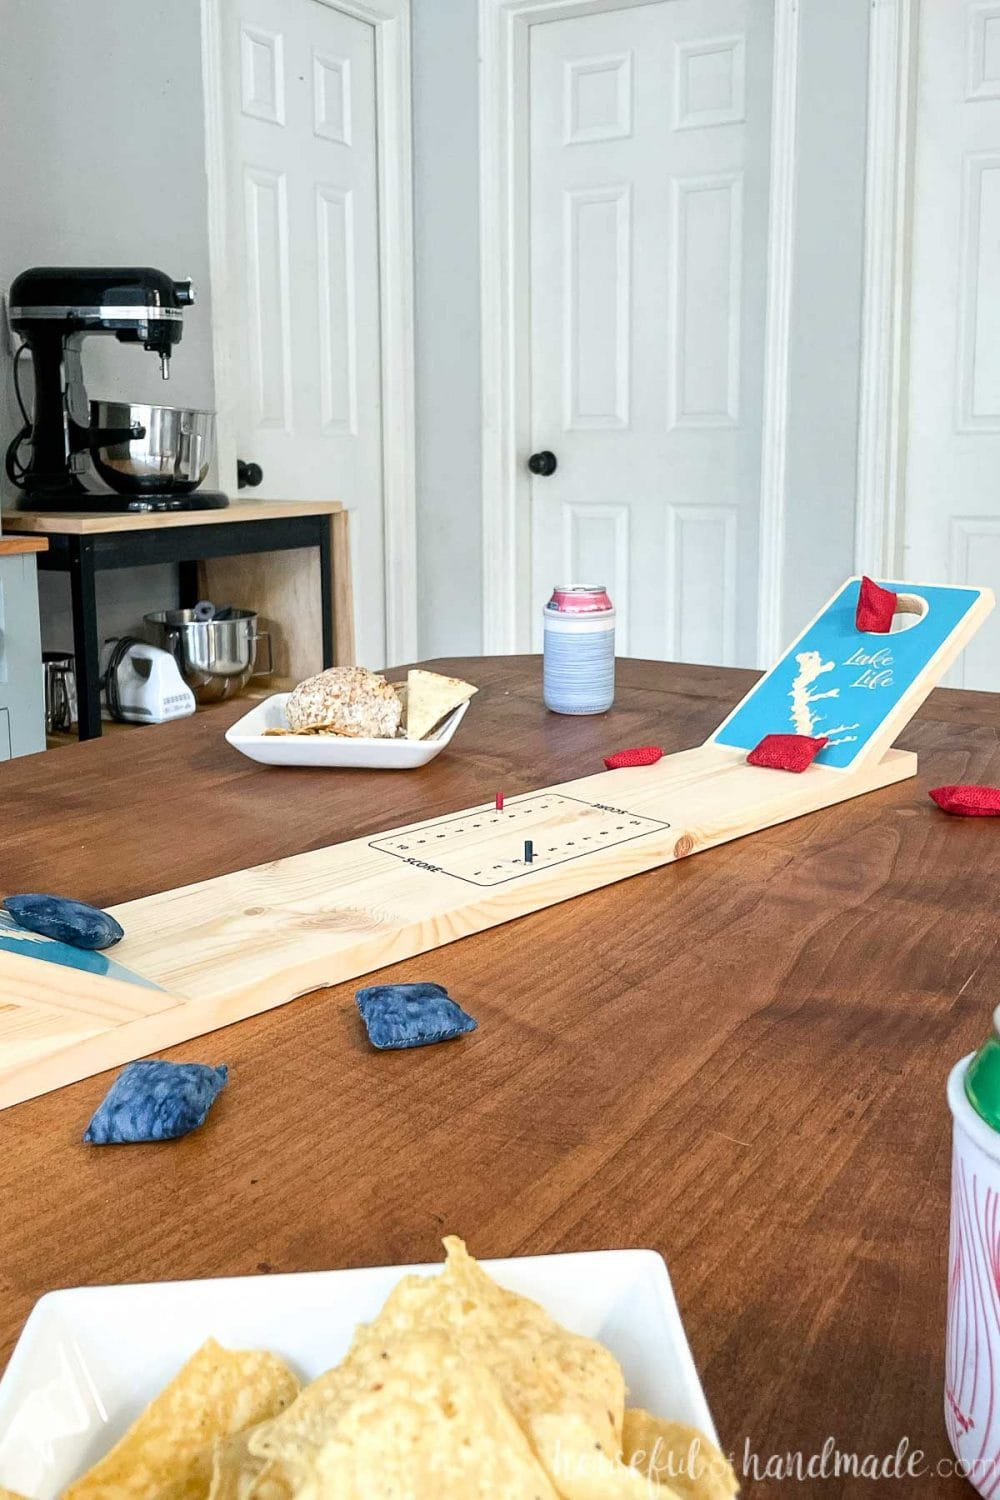 Looking across a dining table set for game night with snacks and a DIY tabletop cornhole game in the center.